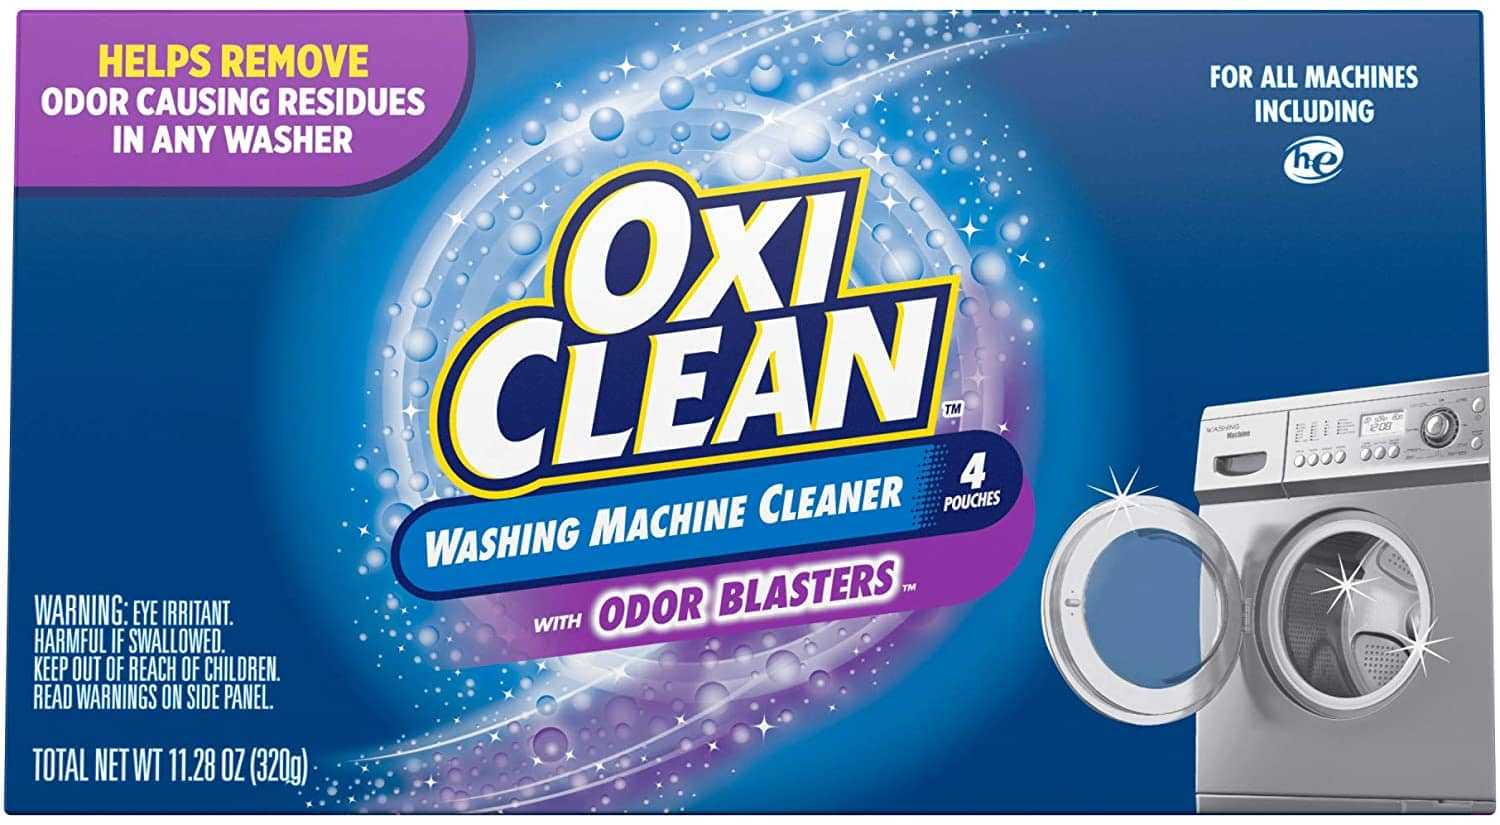 4-Count OxiClean Washing Machine Cleaner with Odor Blasters $4.87 w/ S&S + Free Shipping w/ Prime or on $25+